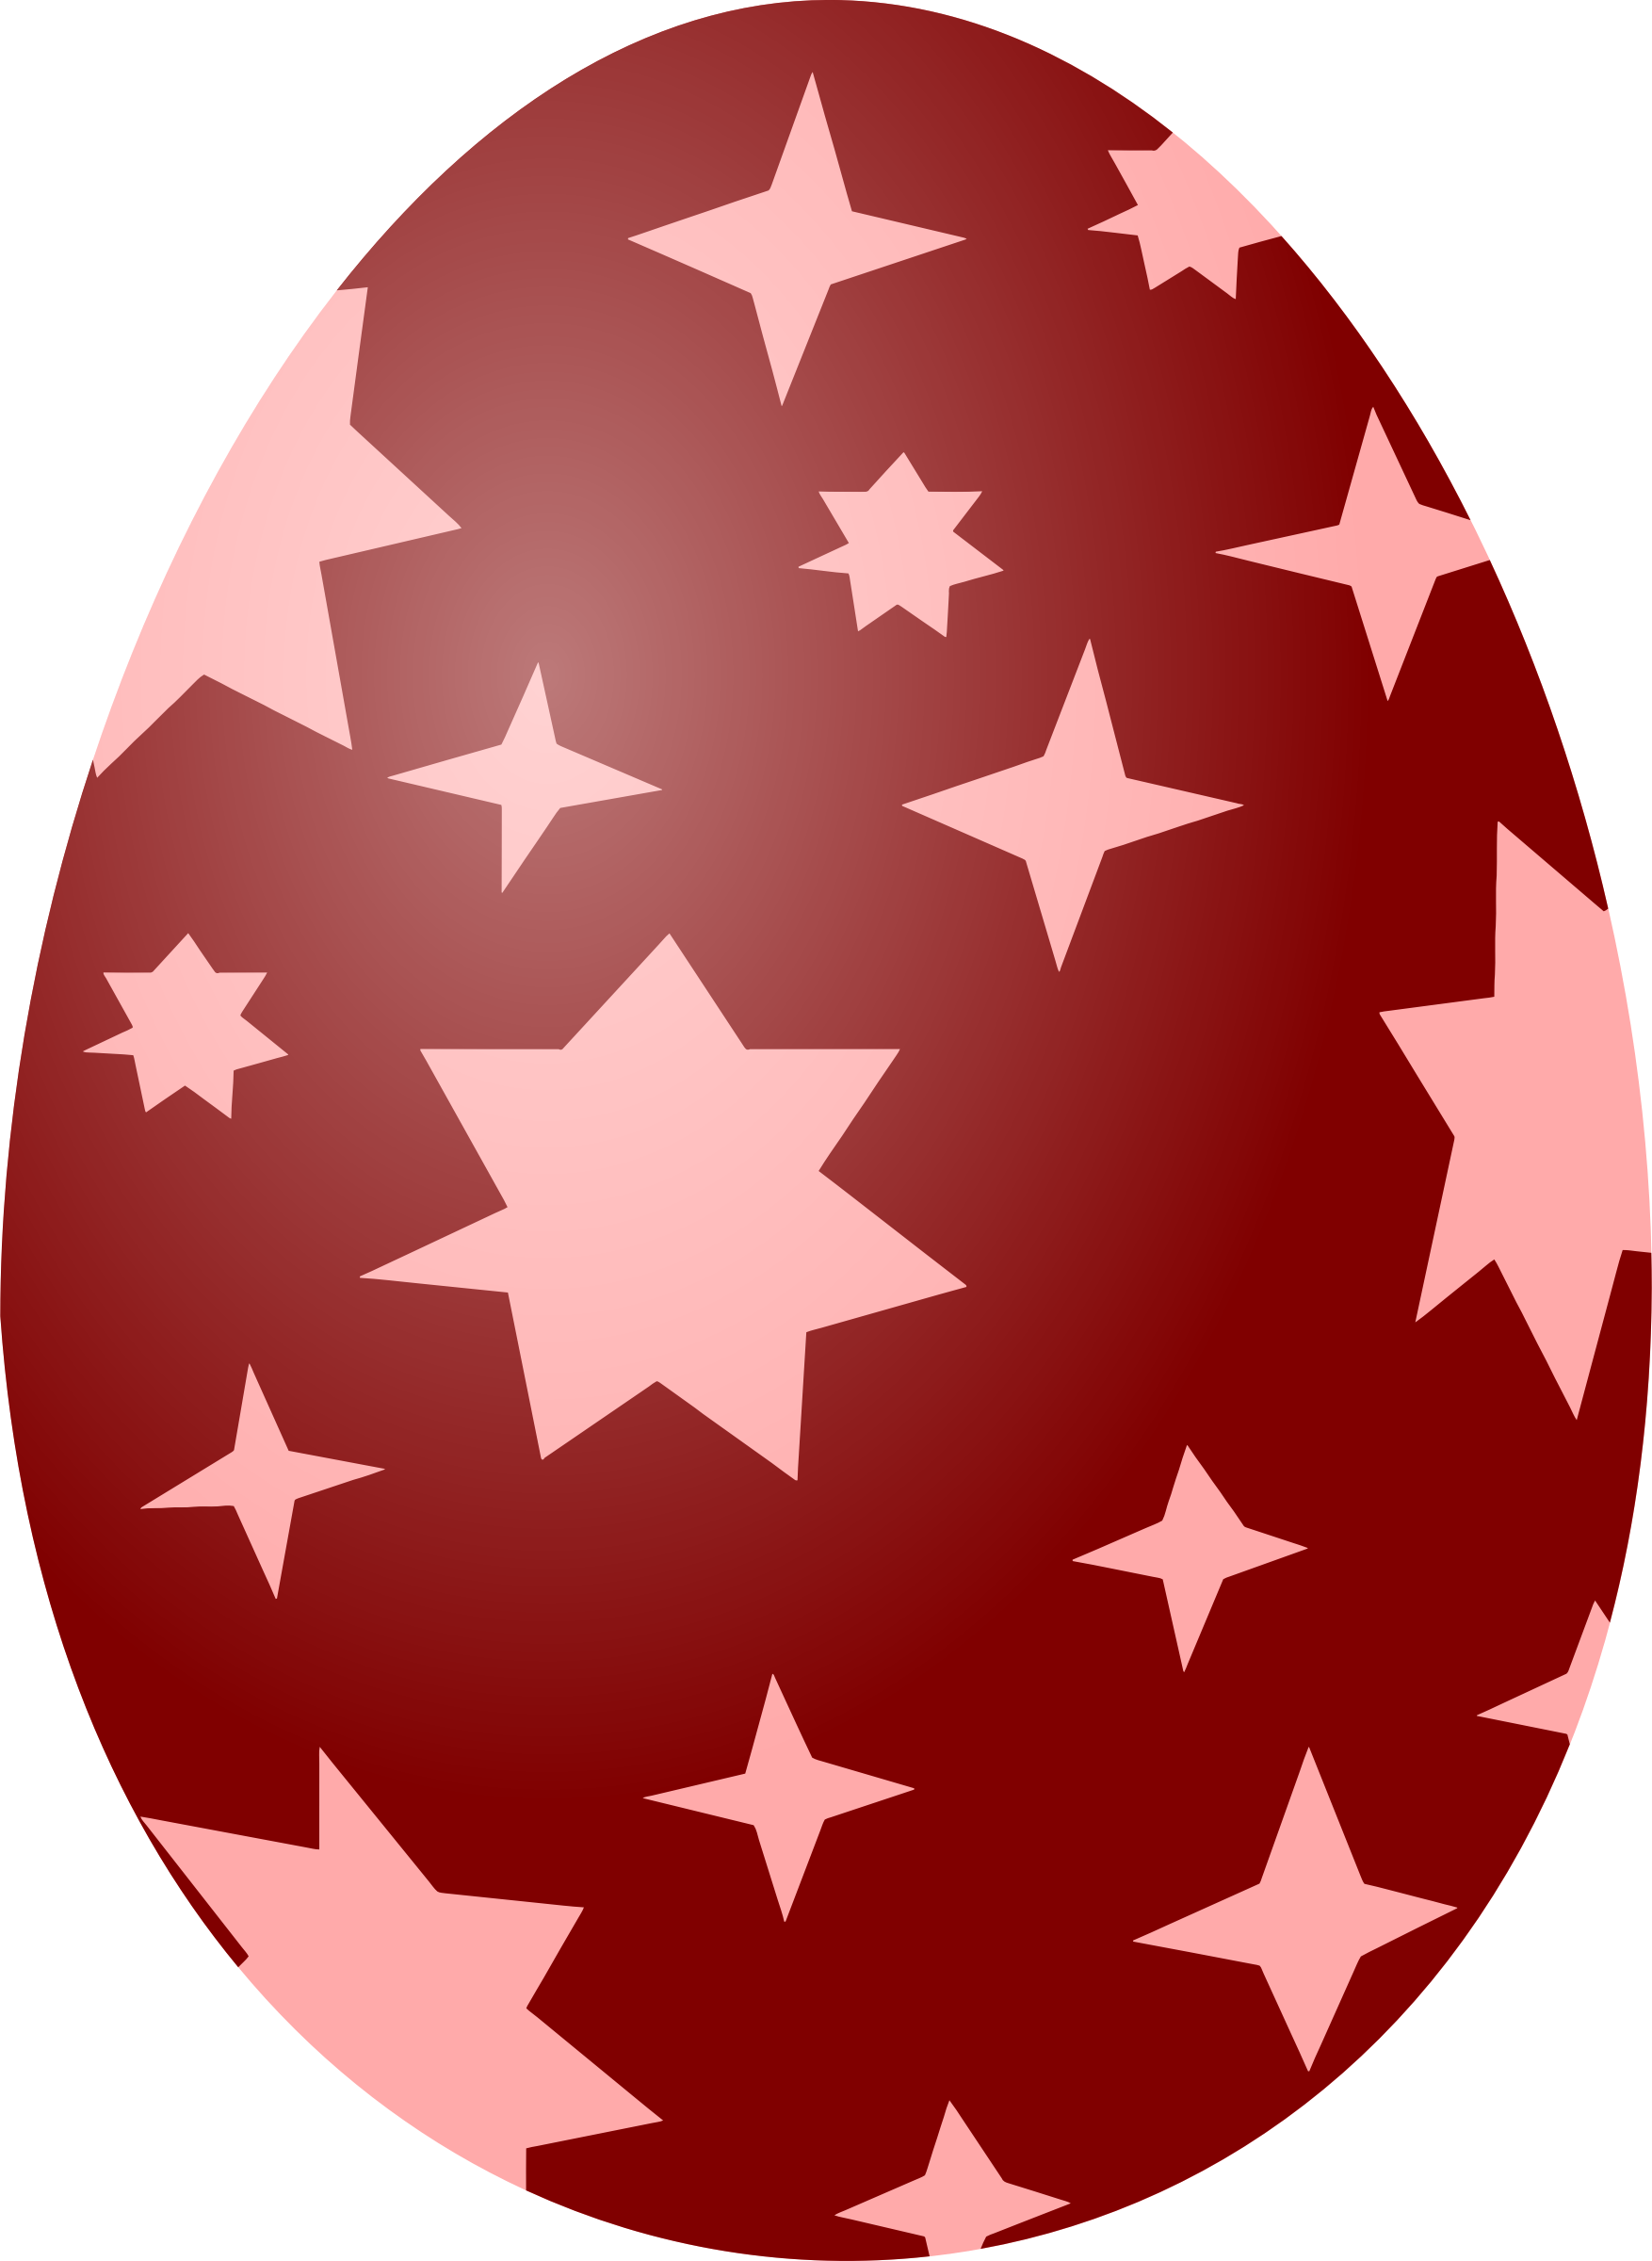 Easter egg 4 by Firkin